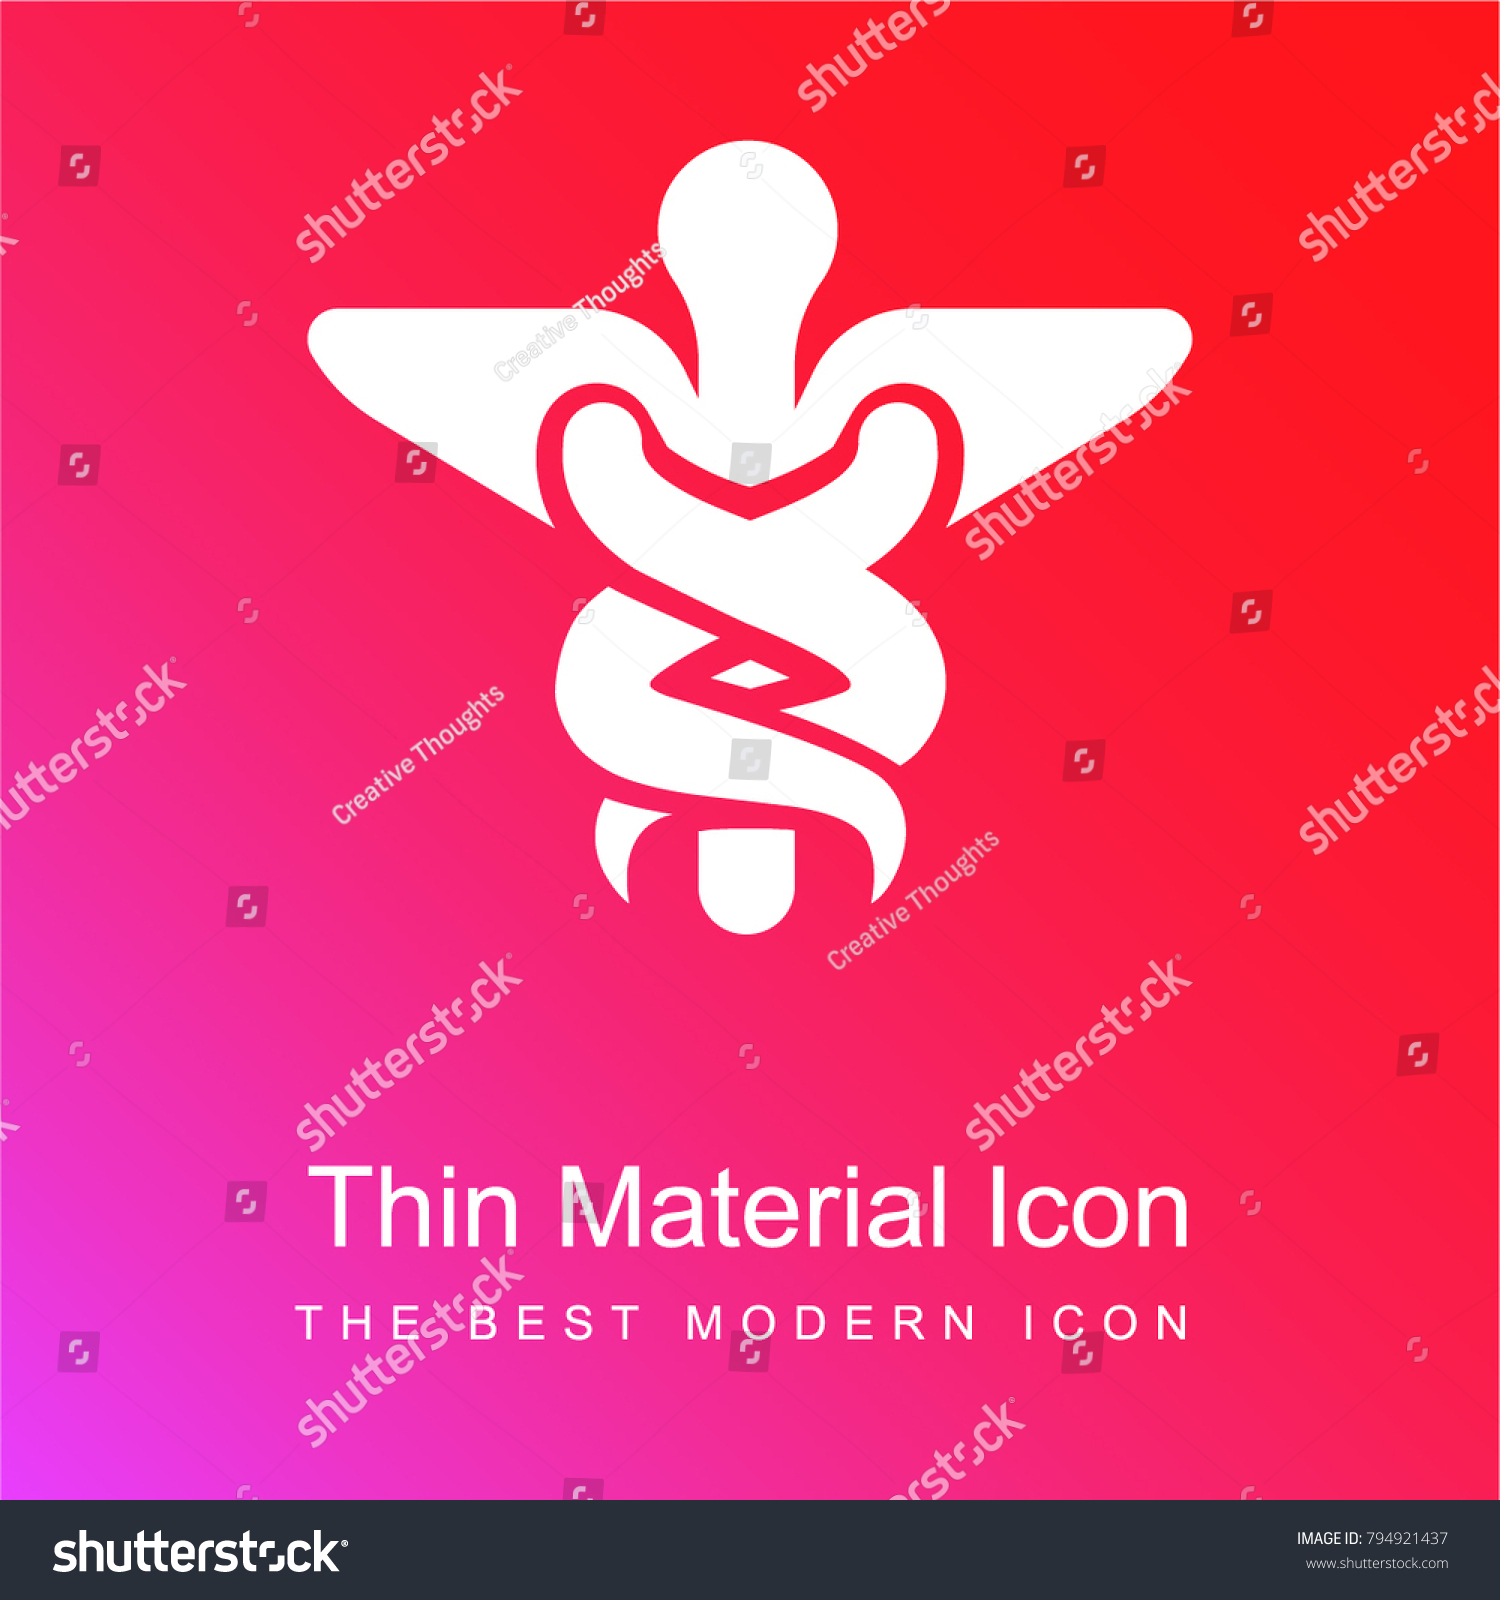 Caduceus medical symbol two ascending serpents stock vector caduceus medical symbol two ascending serpents stock vector 794921437 shutterstock buycottarizona Image collections